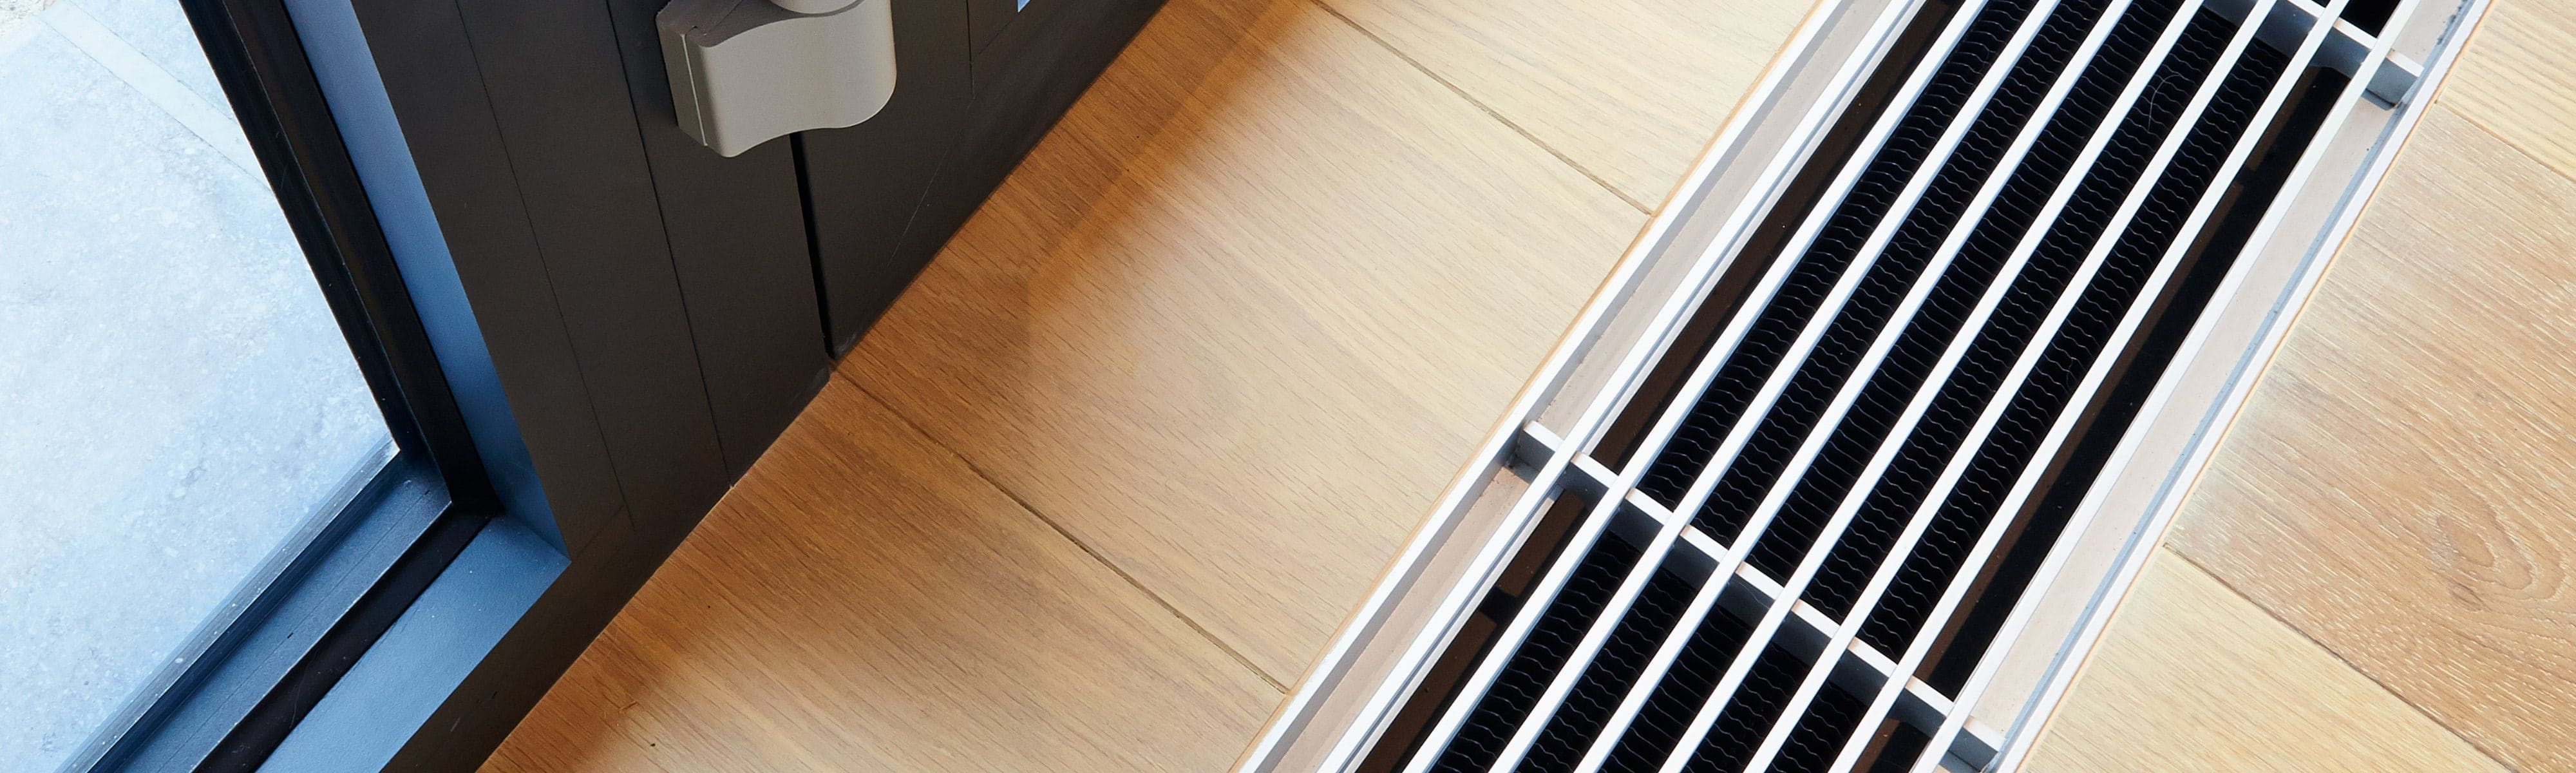 Air duct on a wood floor.